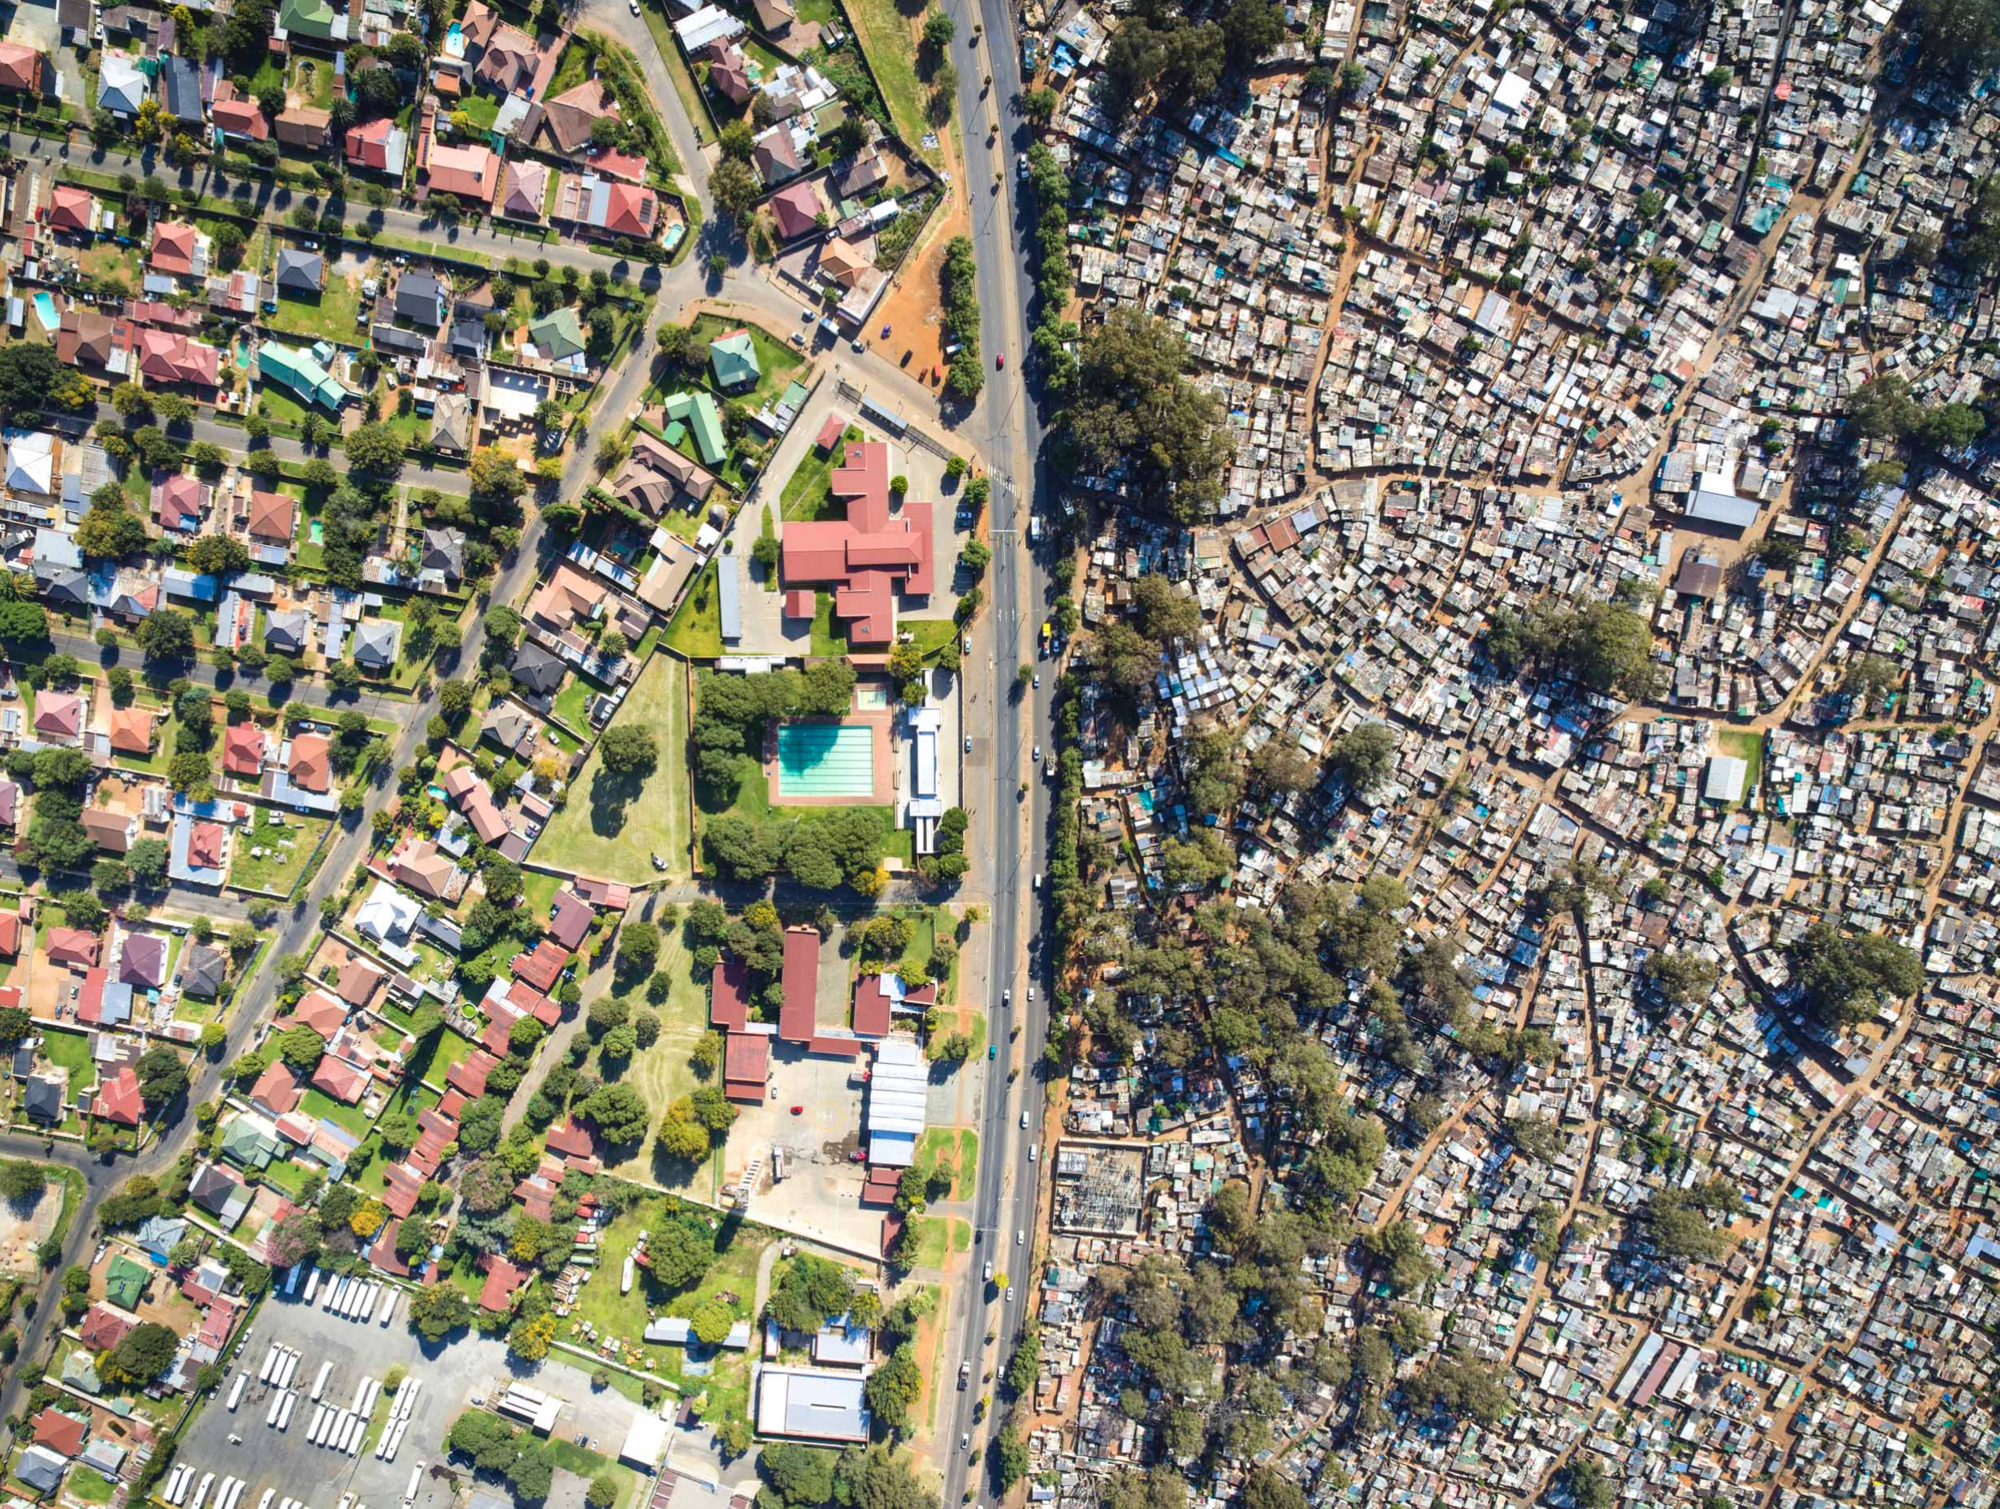 Divided: Urban Inequality in South Africa